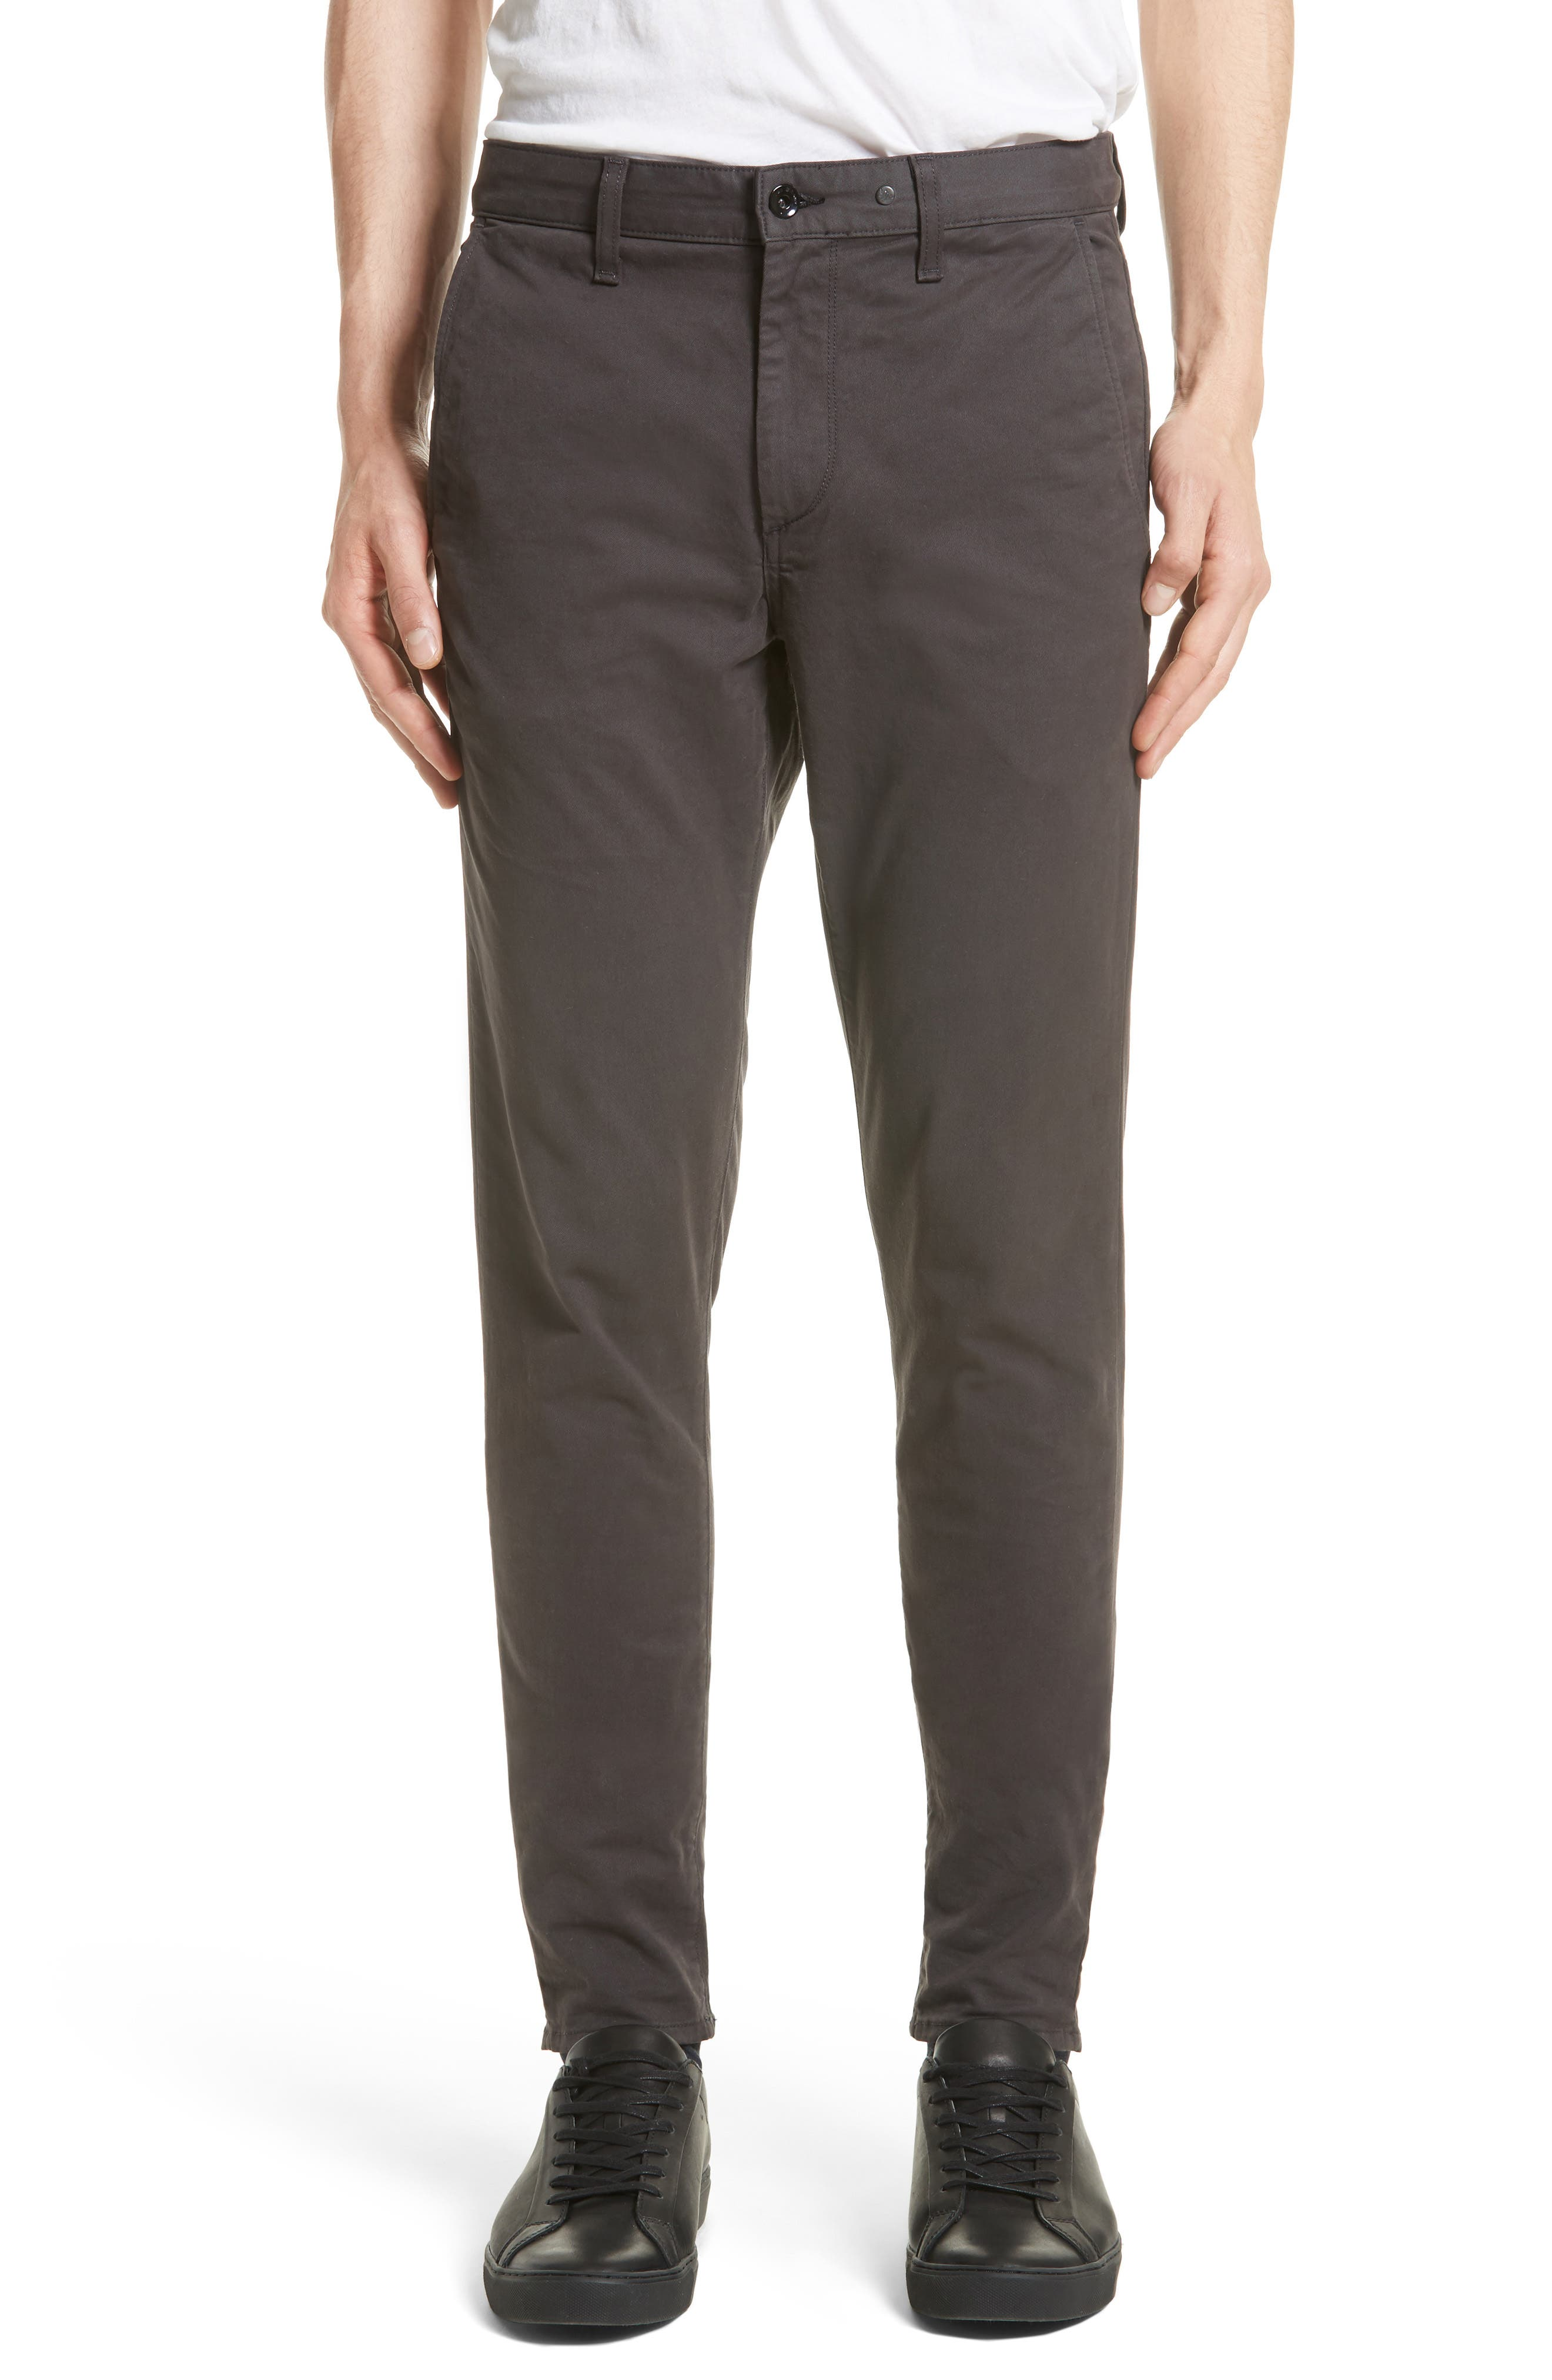 Fit 1 Chinos,                         Main,                         color, Grey